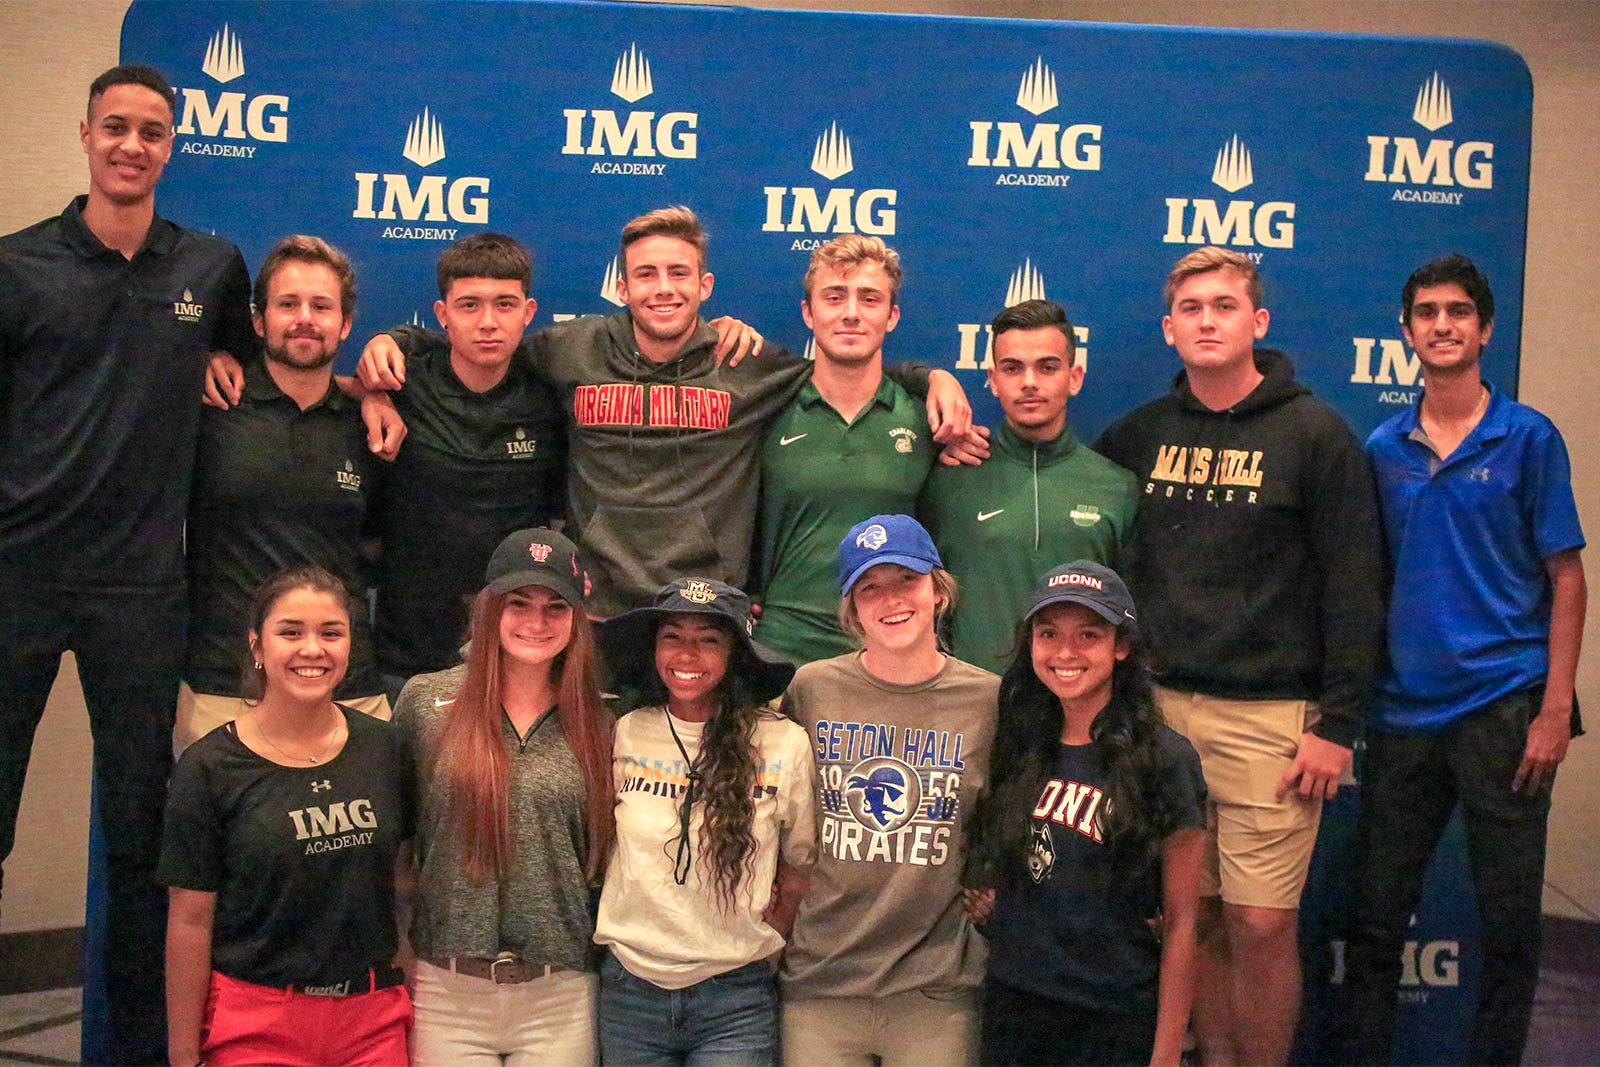 img academy nli signing day